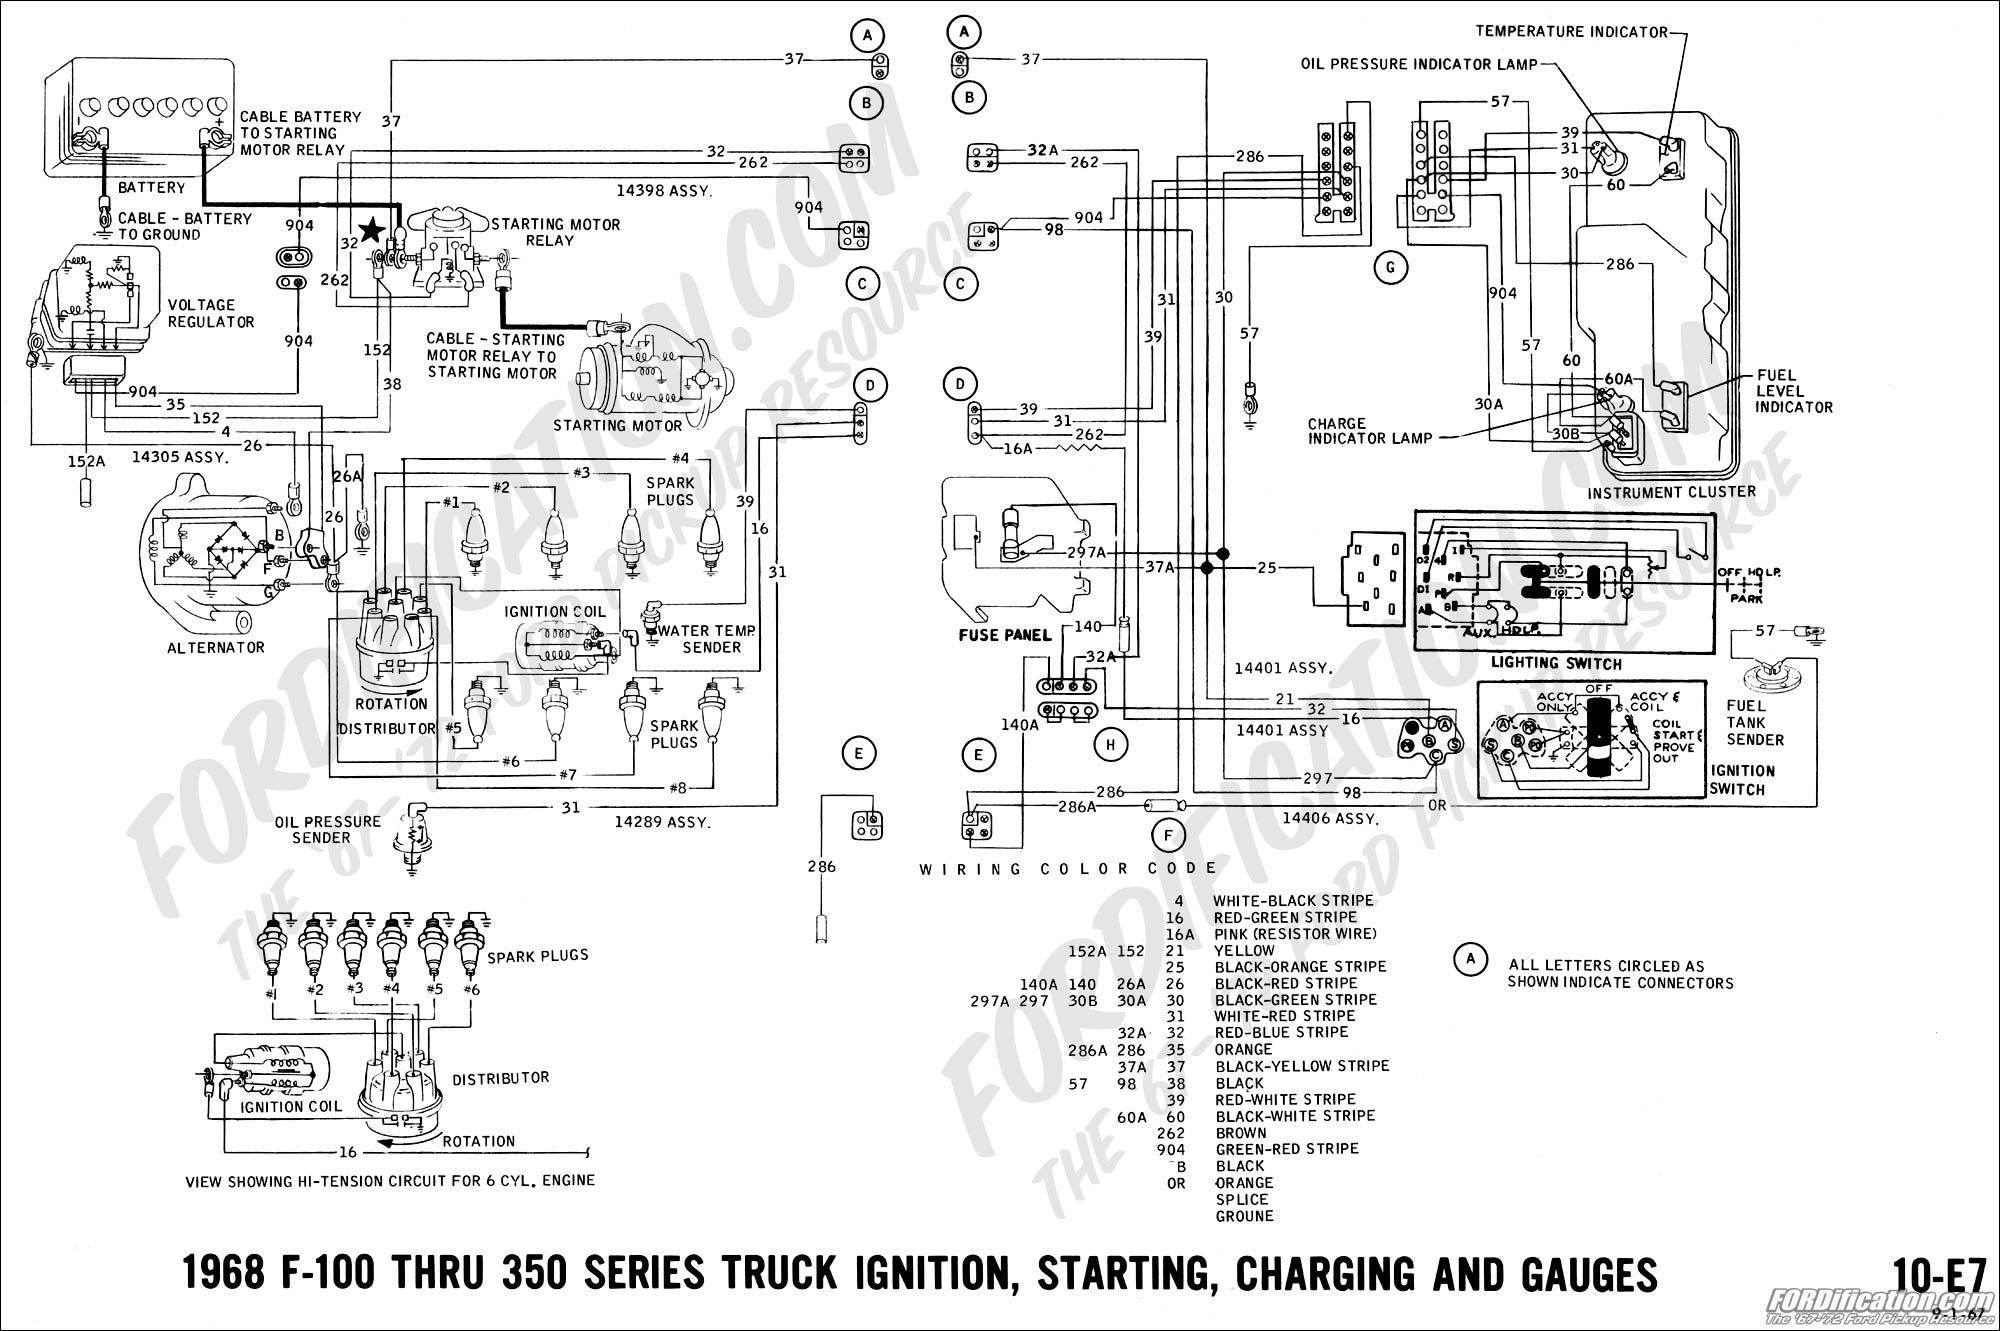 68 09 ford truck technical drawings and schematics section h wiring ford ignition system wiring diagram at readyjetset.co